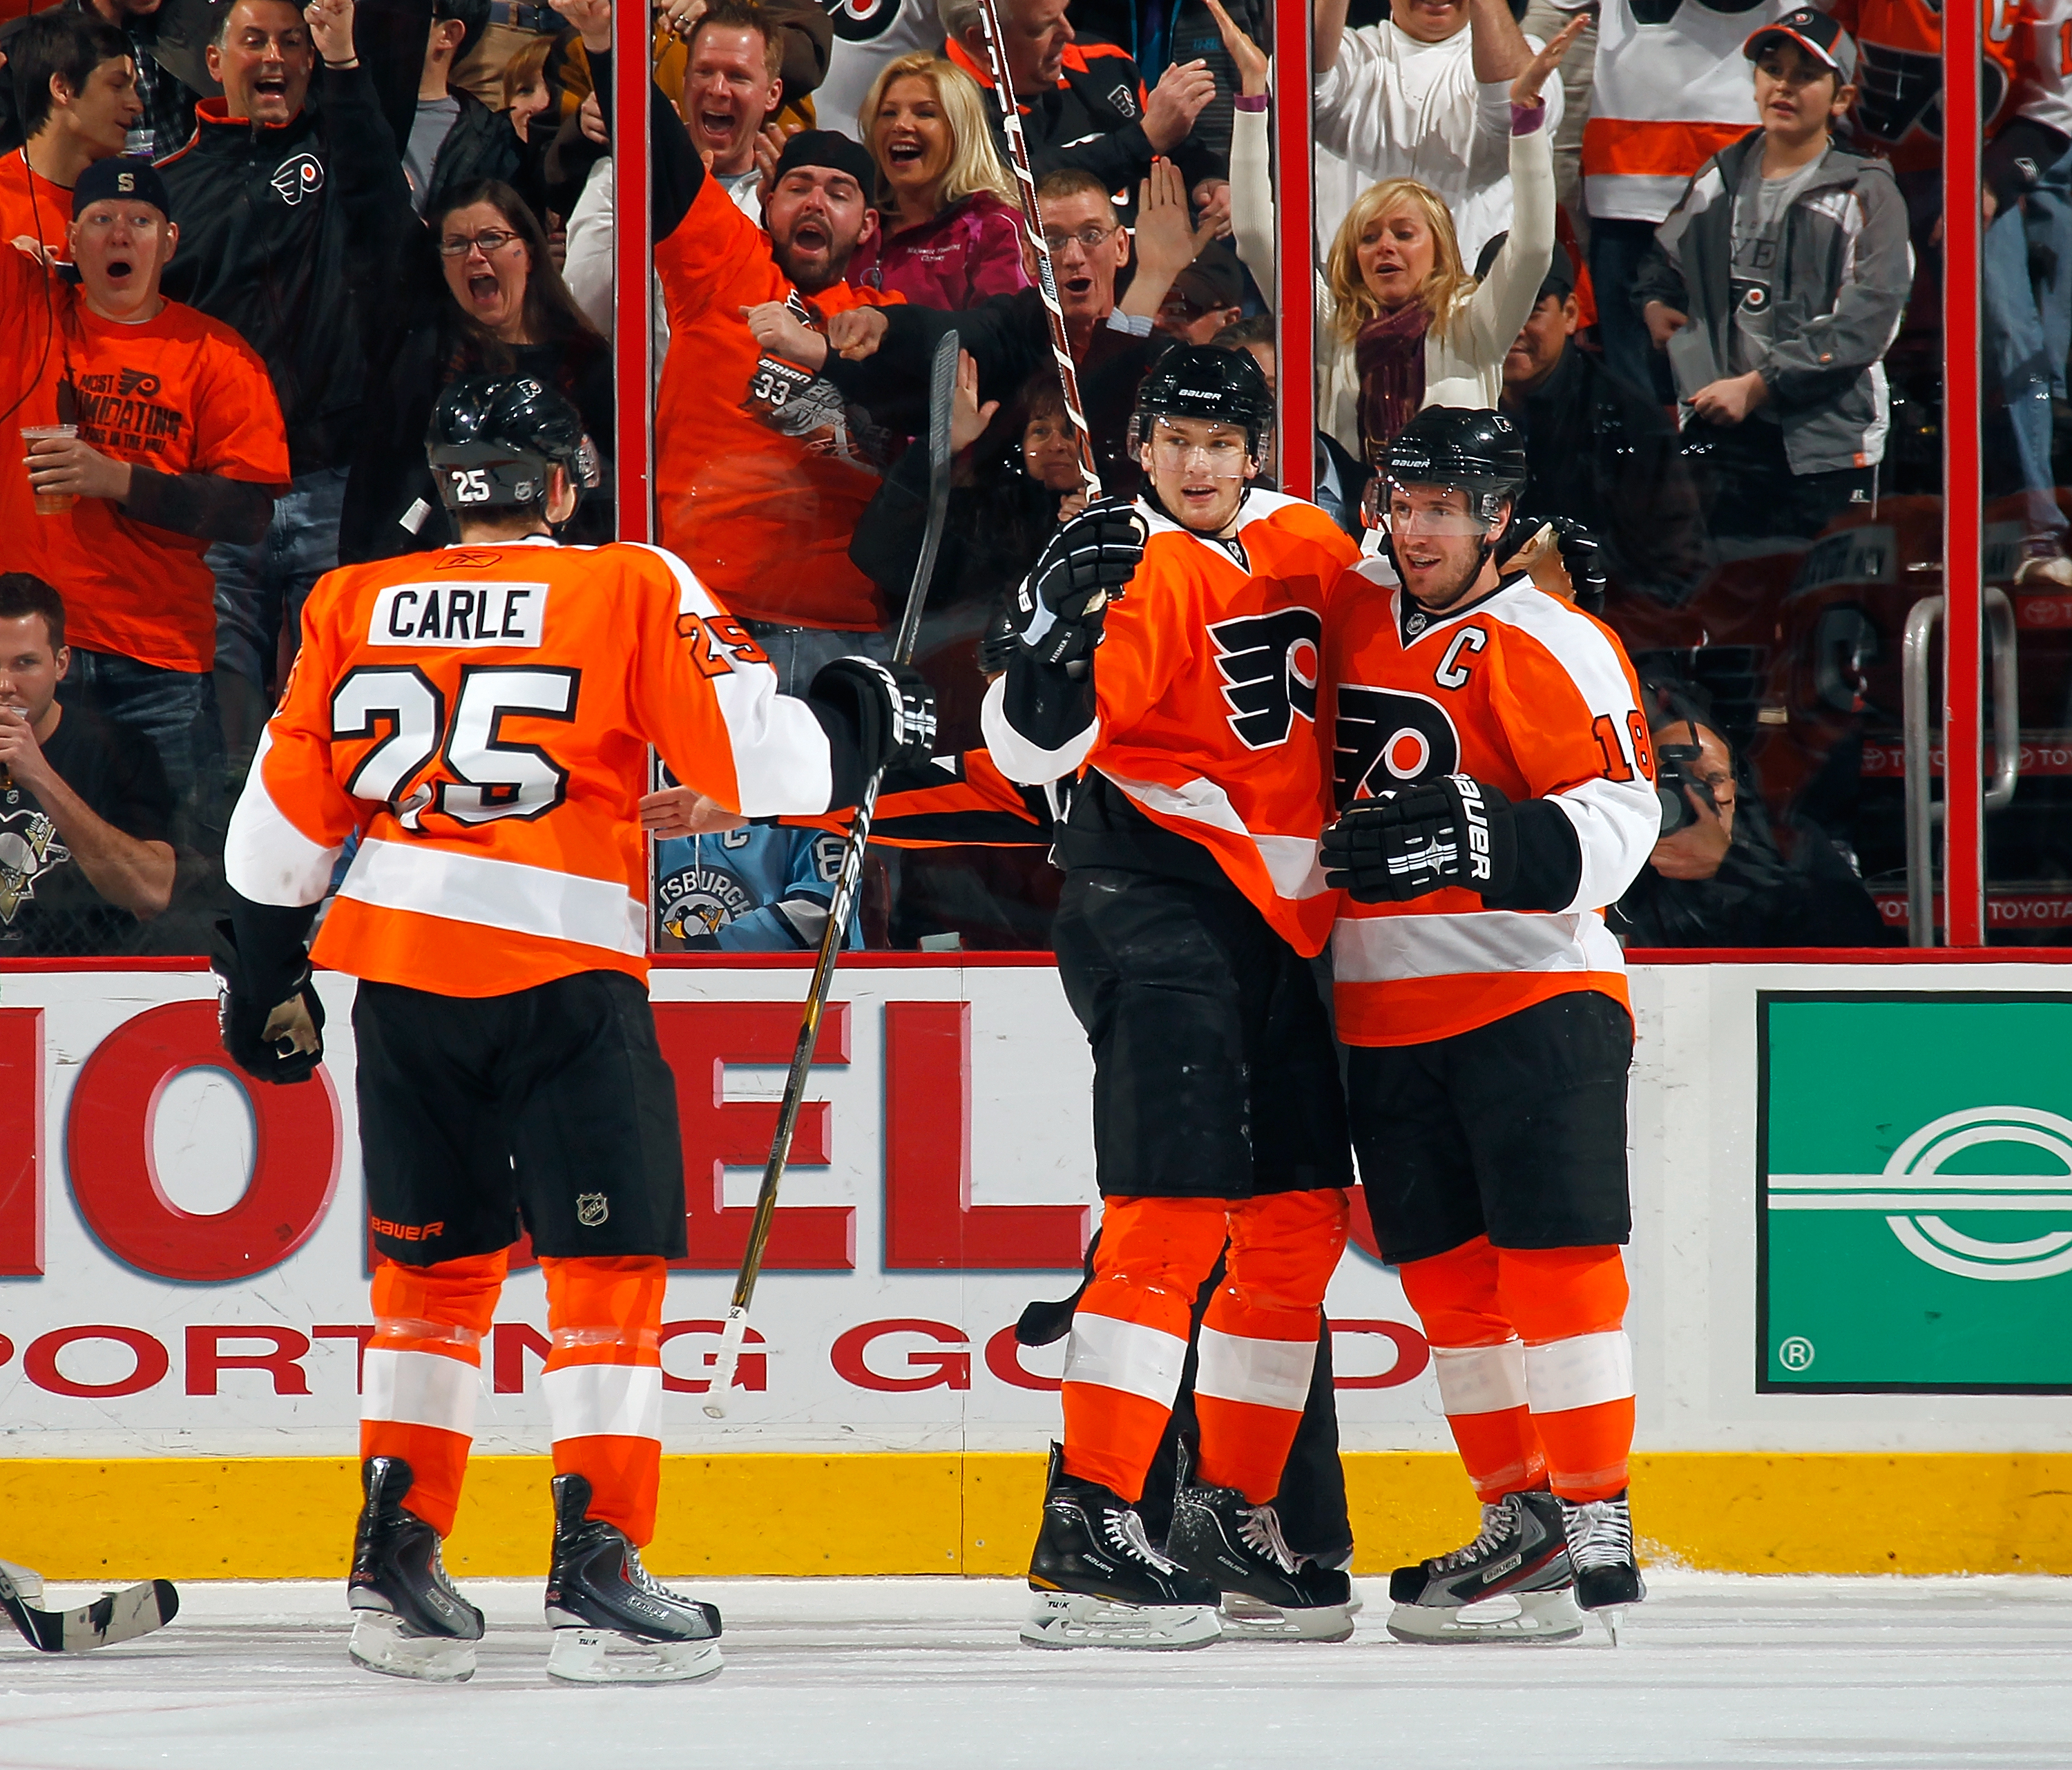 PHILADELPHIA - MARCH 24:  Mike Richards #18 and James van Riemsdyk #21 of the Philadelphia Flyers celebrate Richards' first period goal against the Pittsburgh Penguins on March 24, 2011 at the Wells Fargo Center in Philadelphia, Pennsylvania.  (Photo by L